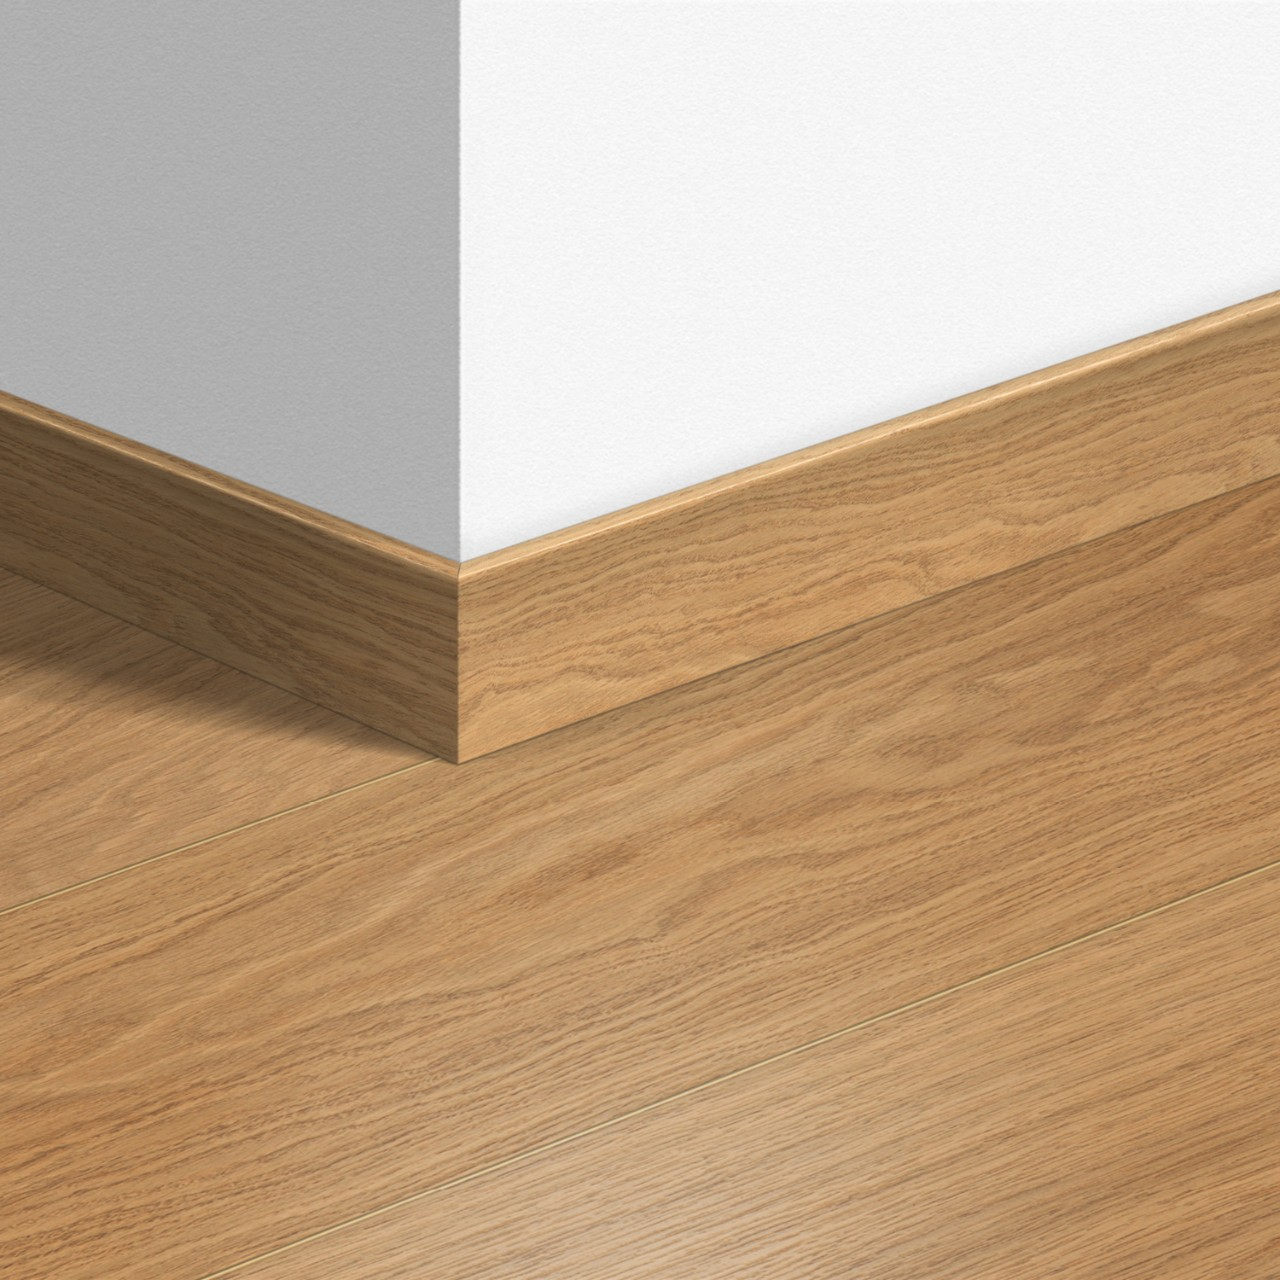 QSSK Laminate Accessories Oak natural oiled QSSK01539